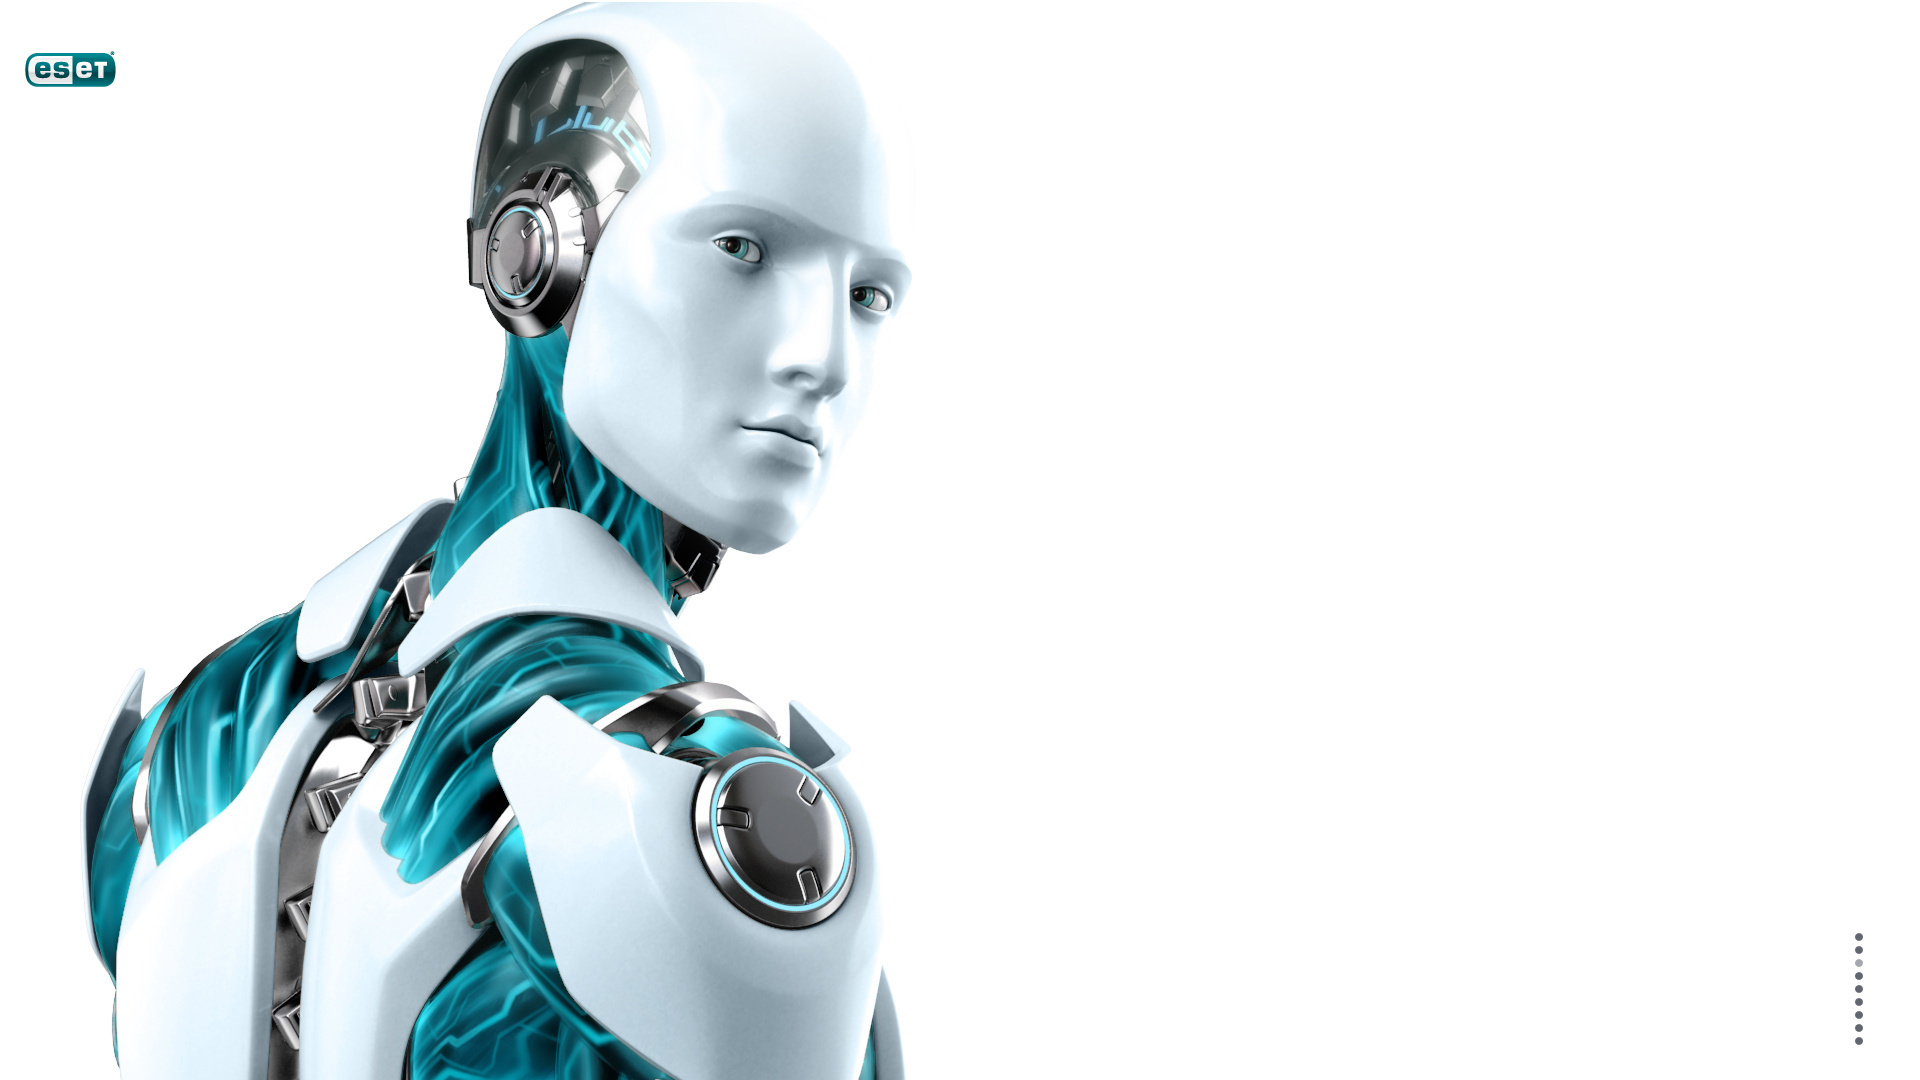 Latest Robot Background   Wallpaper High Definition High Quality 1920x1080